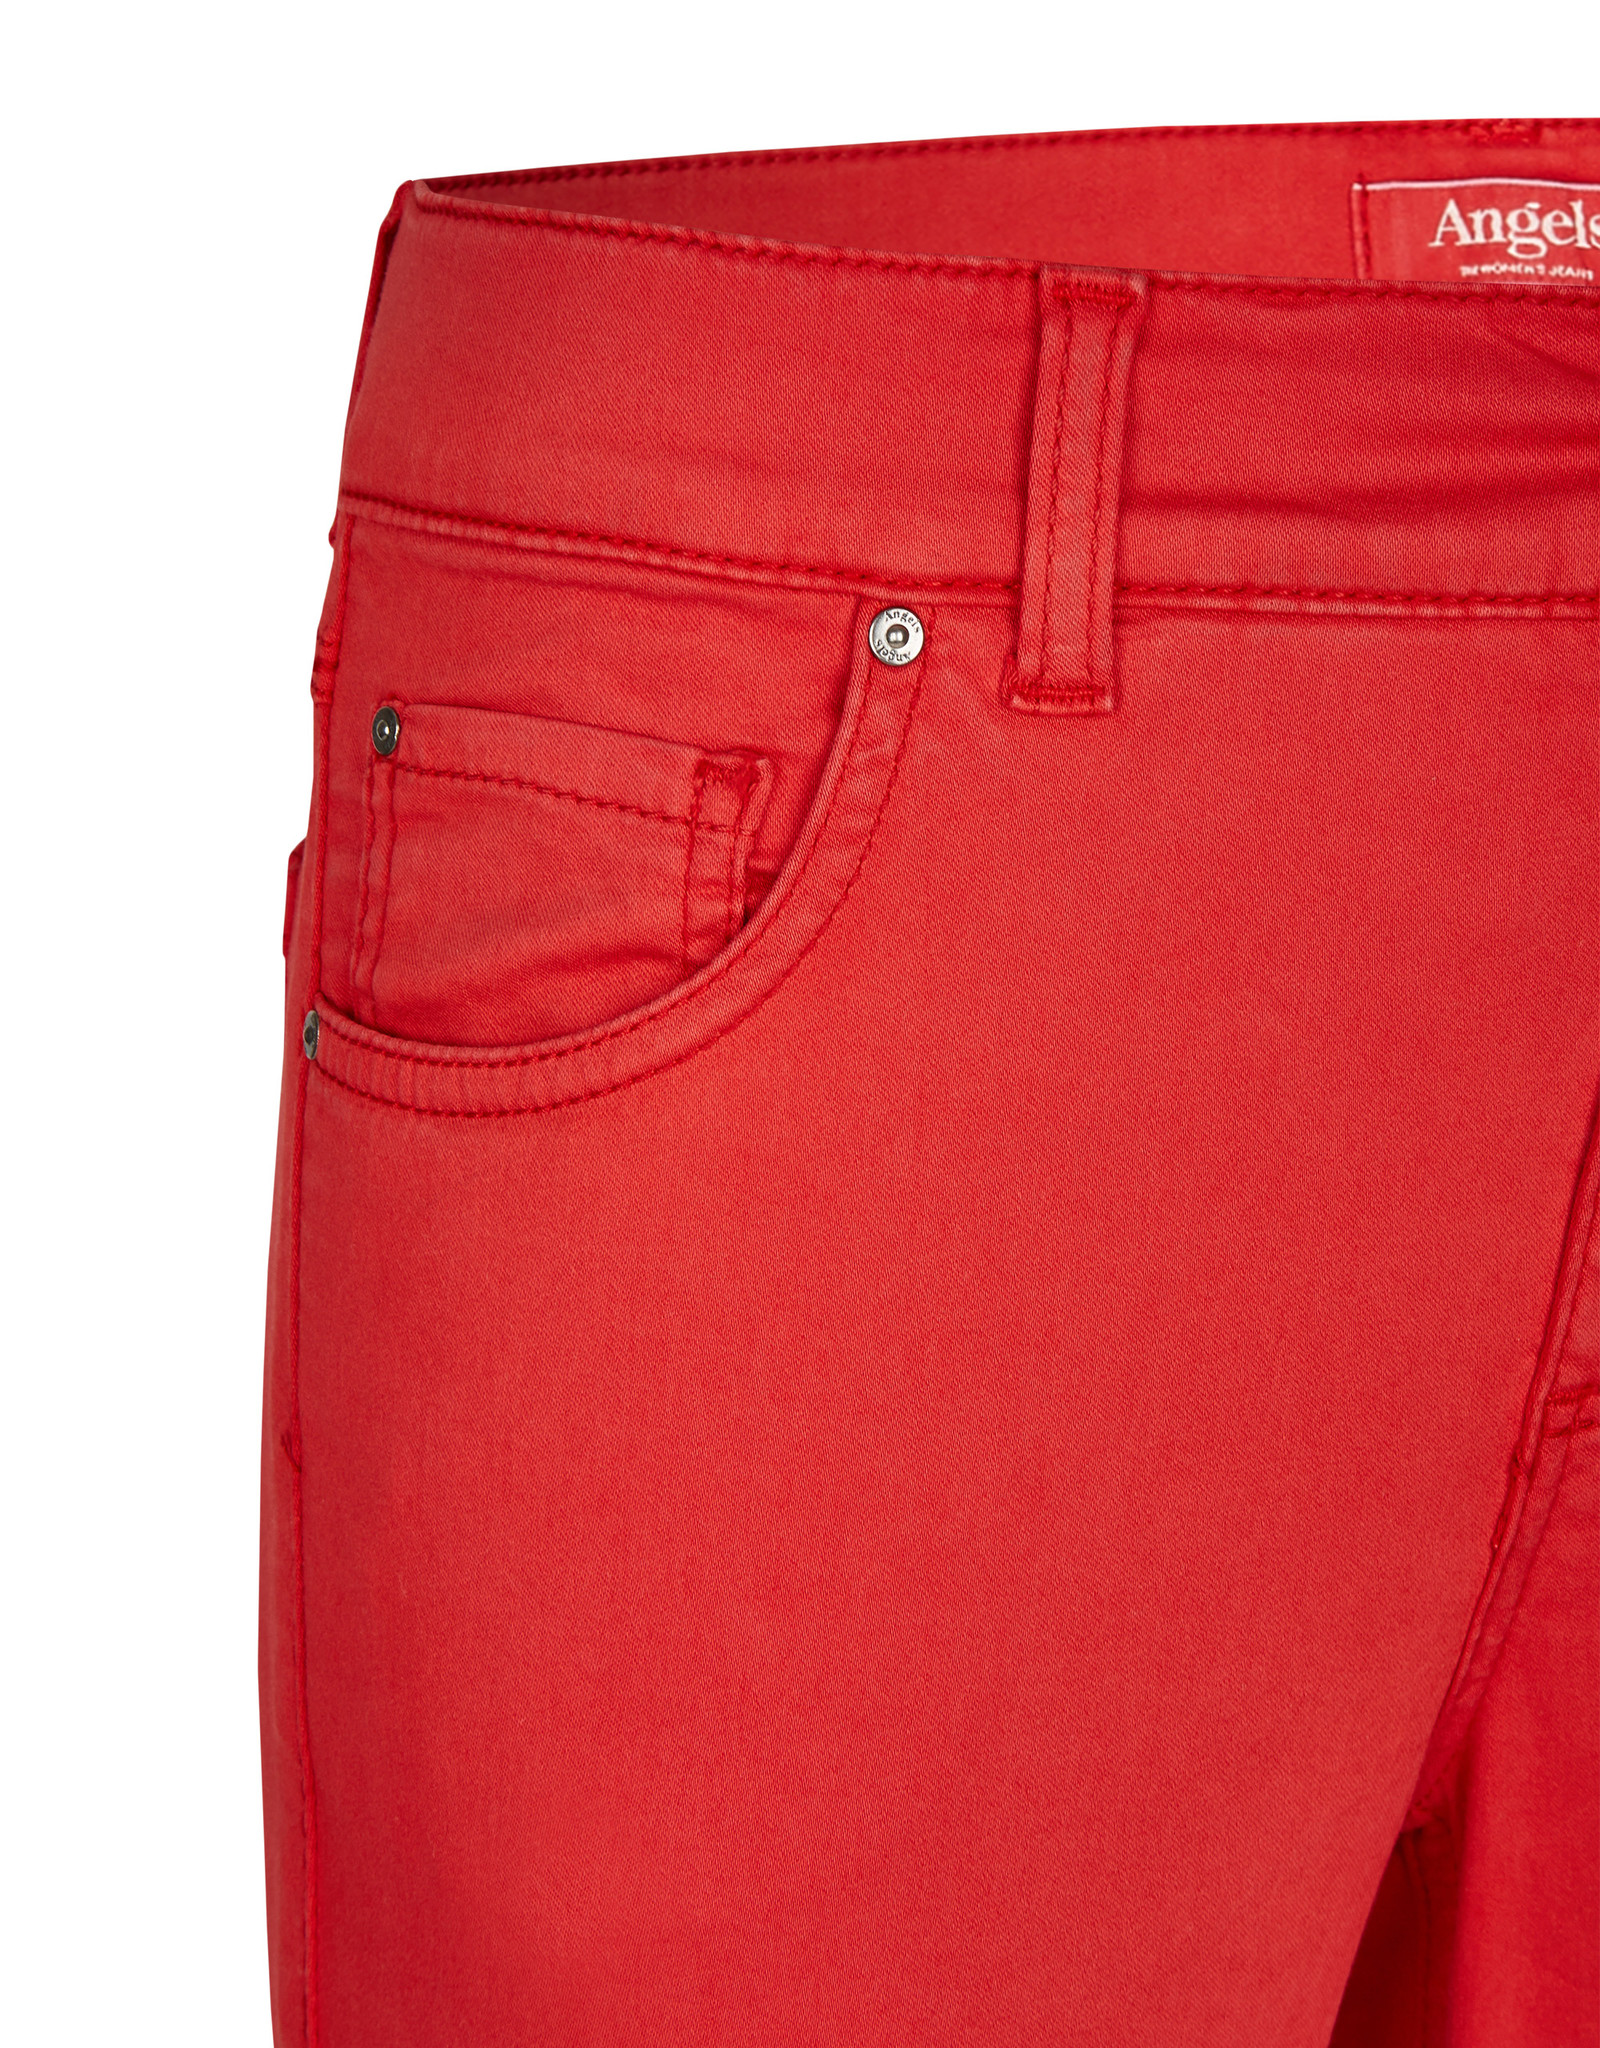 Angels jeans 800030-784/651 dolly